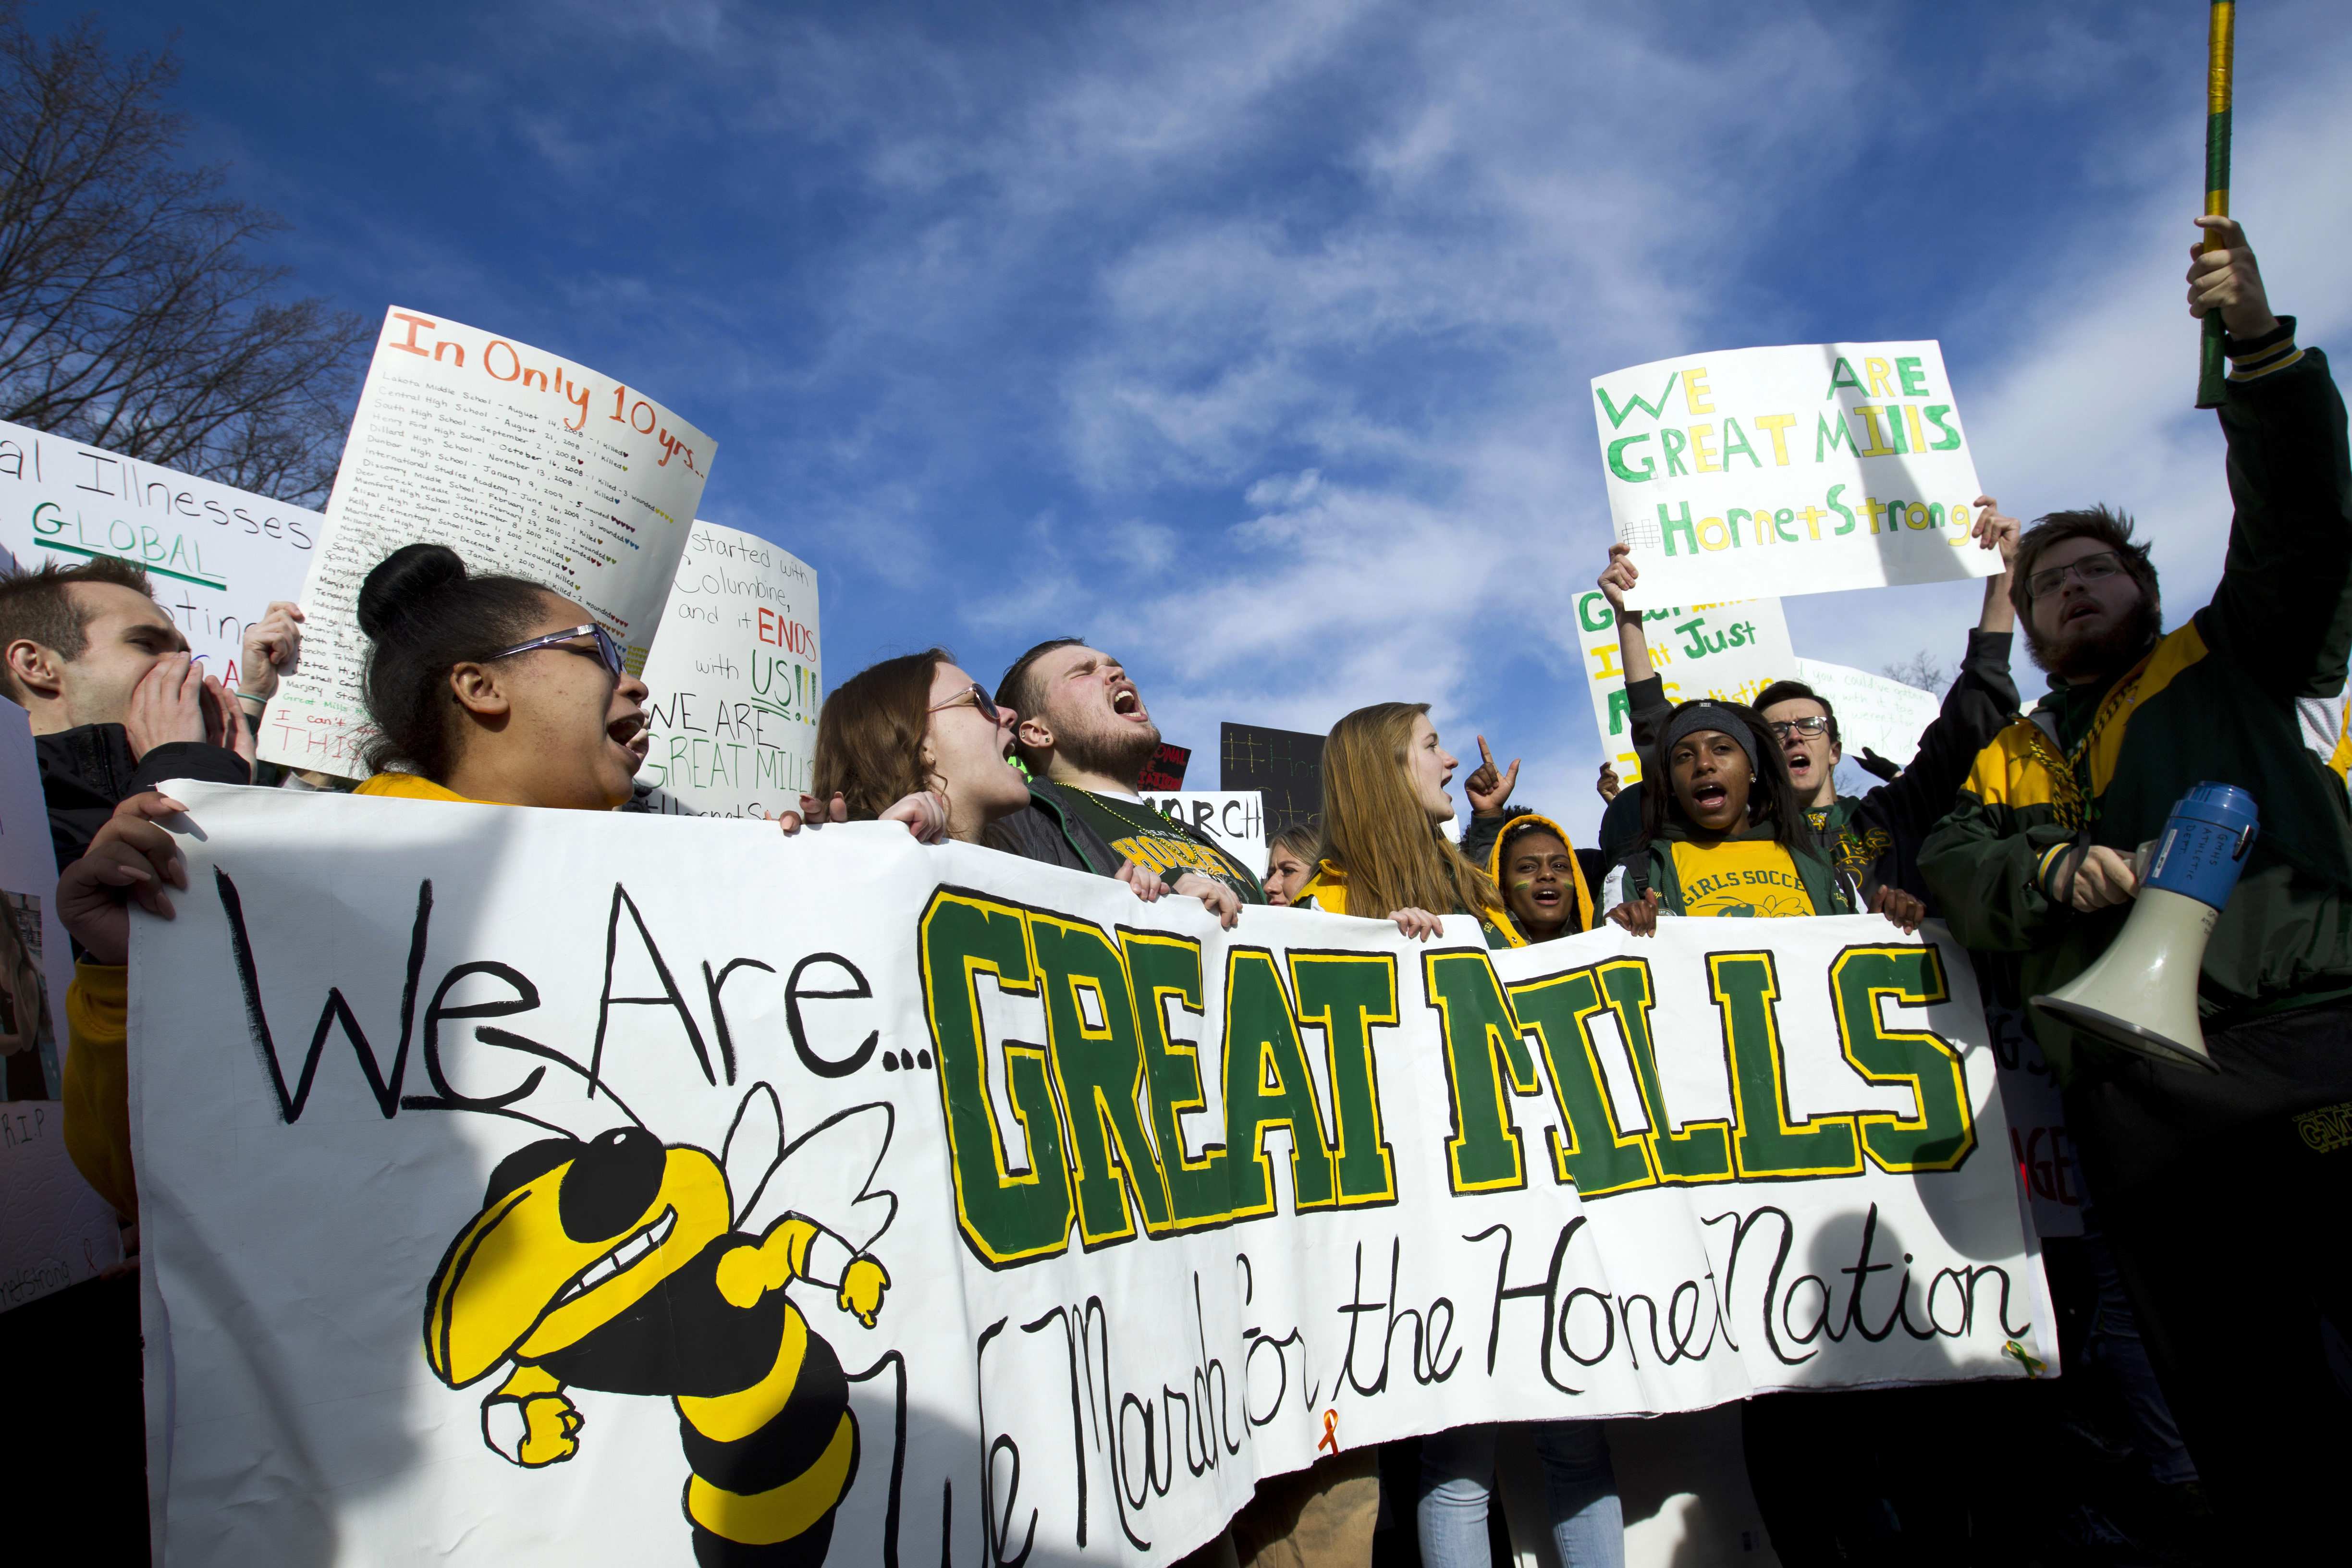 <div class='meta'><div class='origin-logo' data-origin='AP'></div><span class='caption-text' data-credit='AP Photo/Jose Luis Magana'>Students from Great Mills High School in southern Maryland, protest during the &#34;March for Our Lives&#34; rally in support of gun control in Washington.</span></div>